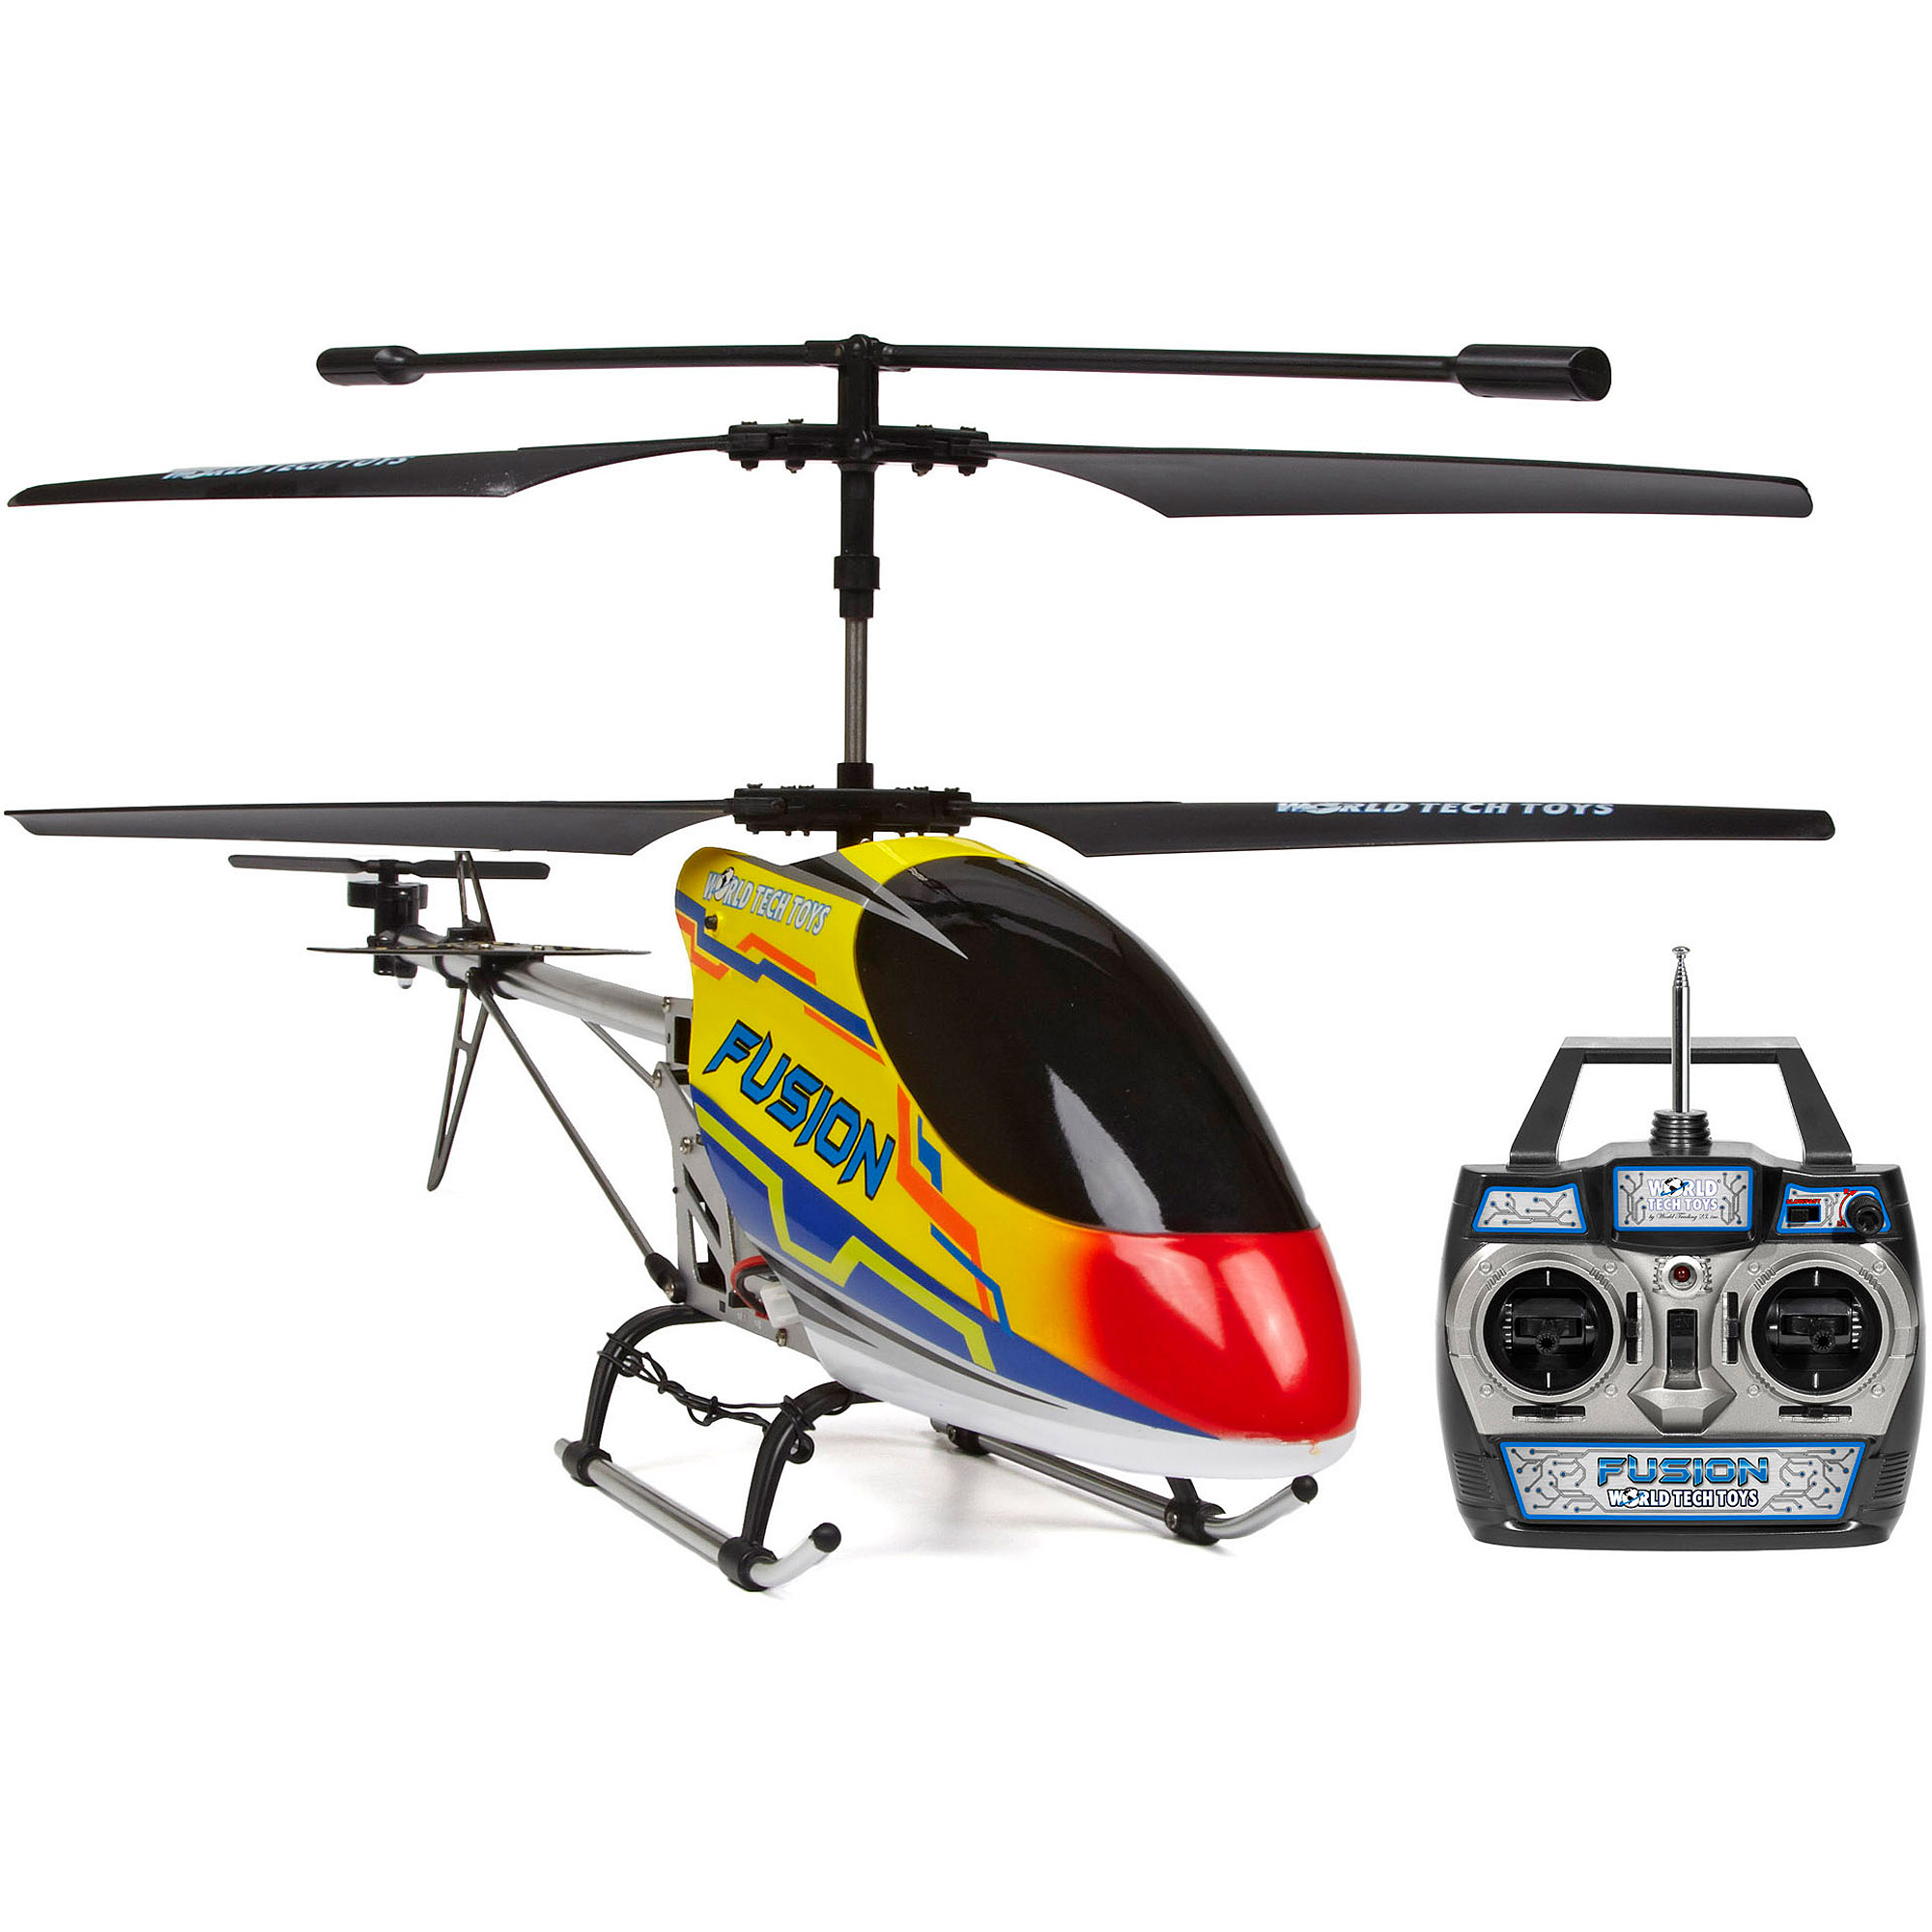 World Tech Toys GYRO Fusion 3.5CH Outdoor RC Helicopter